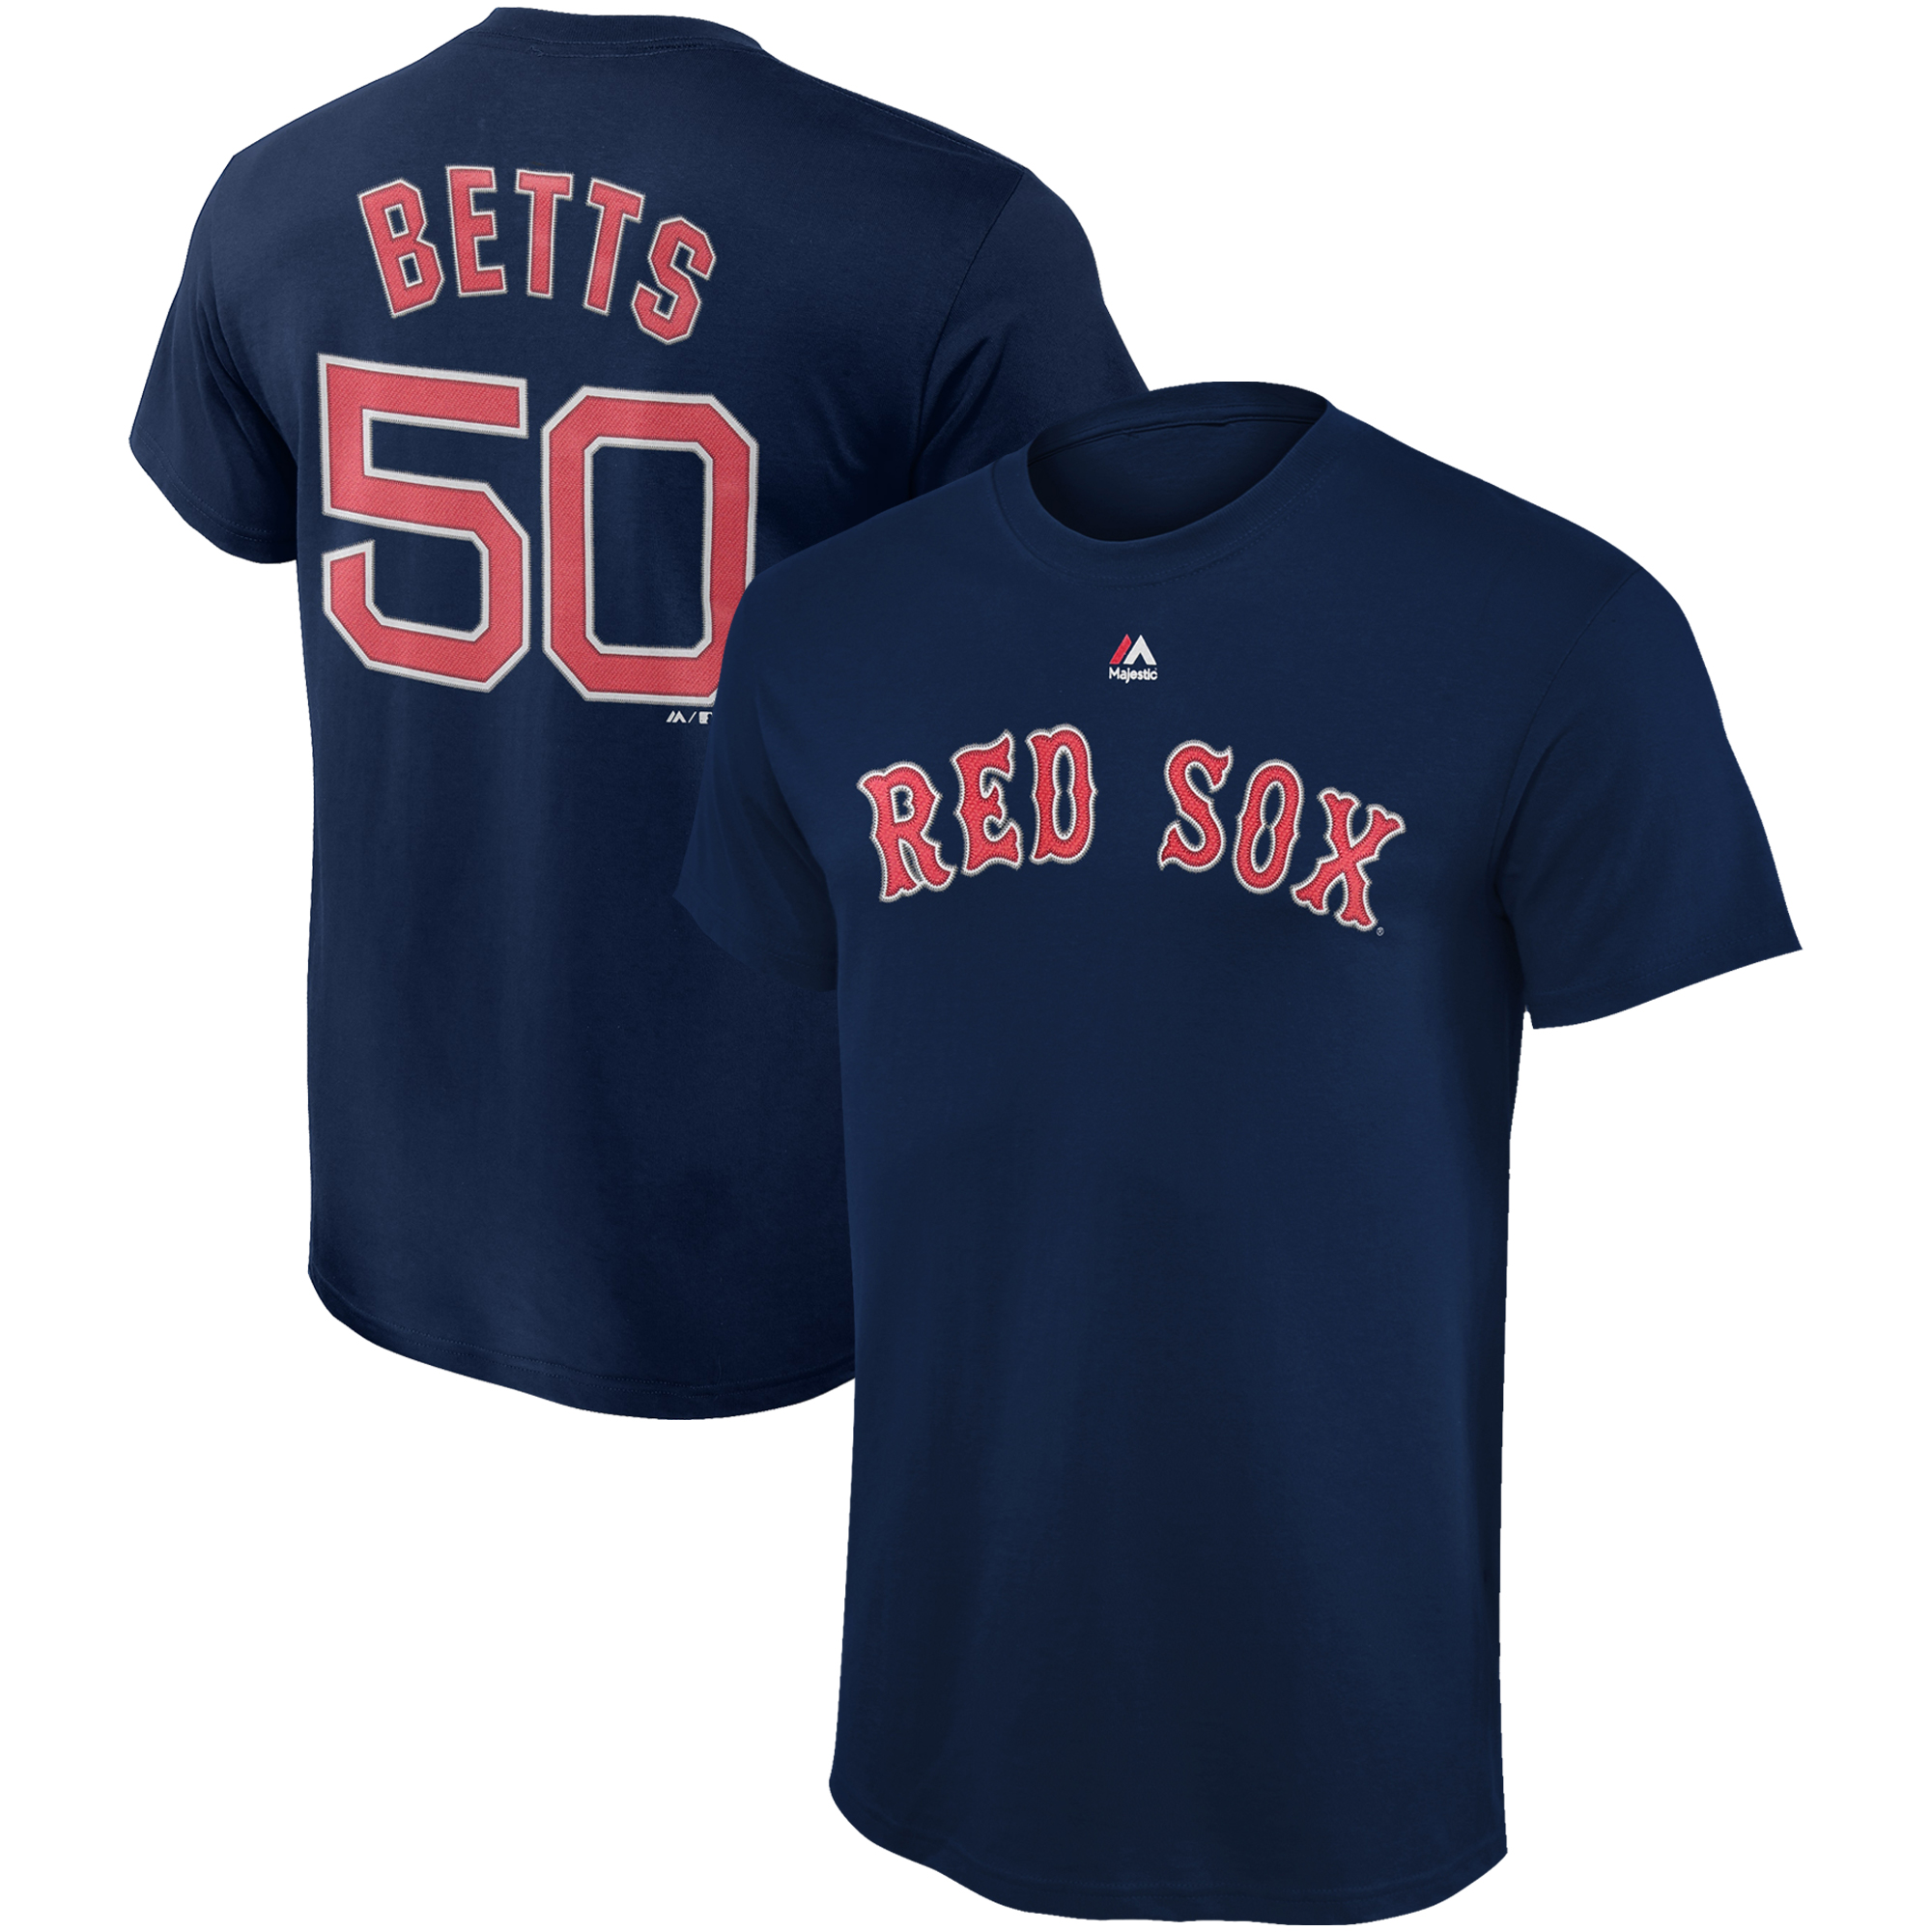 Mookie Betts Boston Red Sox Majestic Youth Player Name & Number T-Shirt - Navy